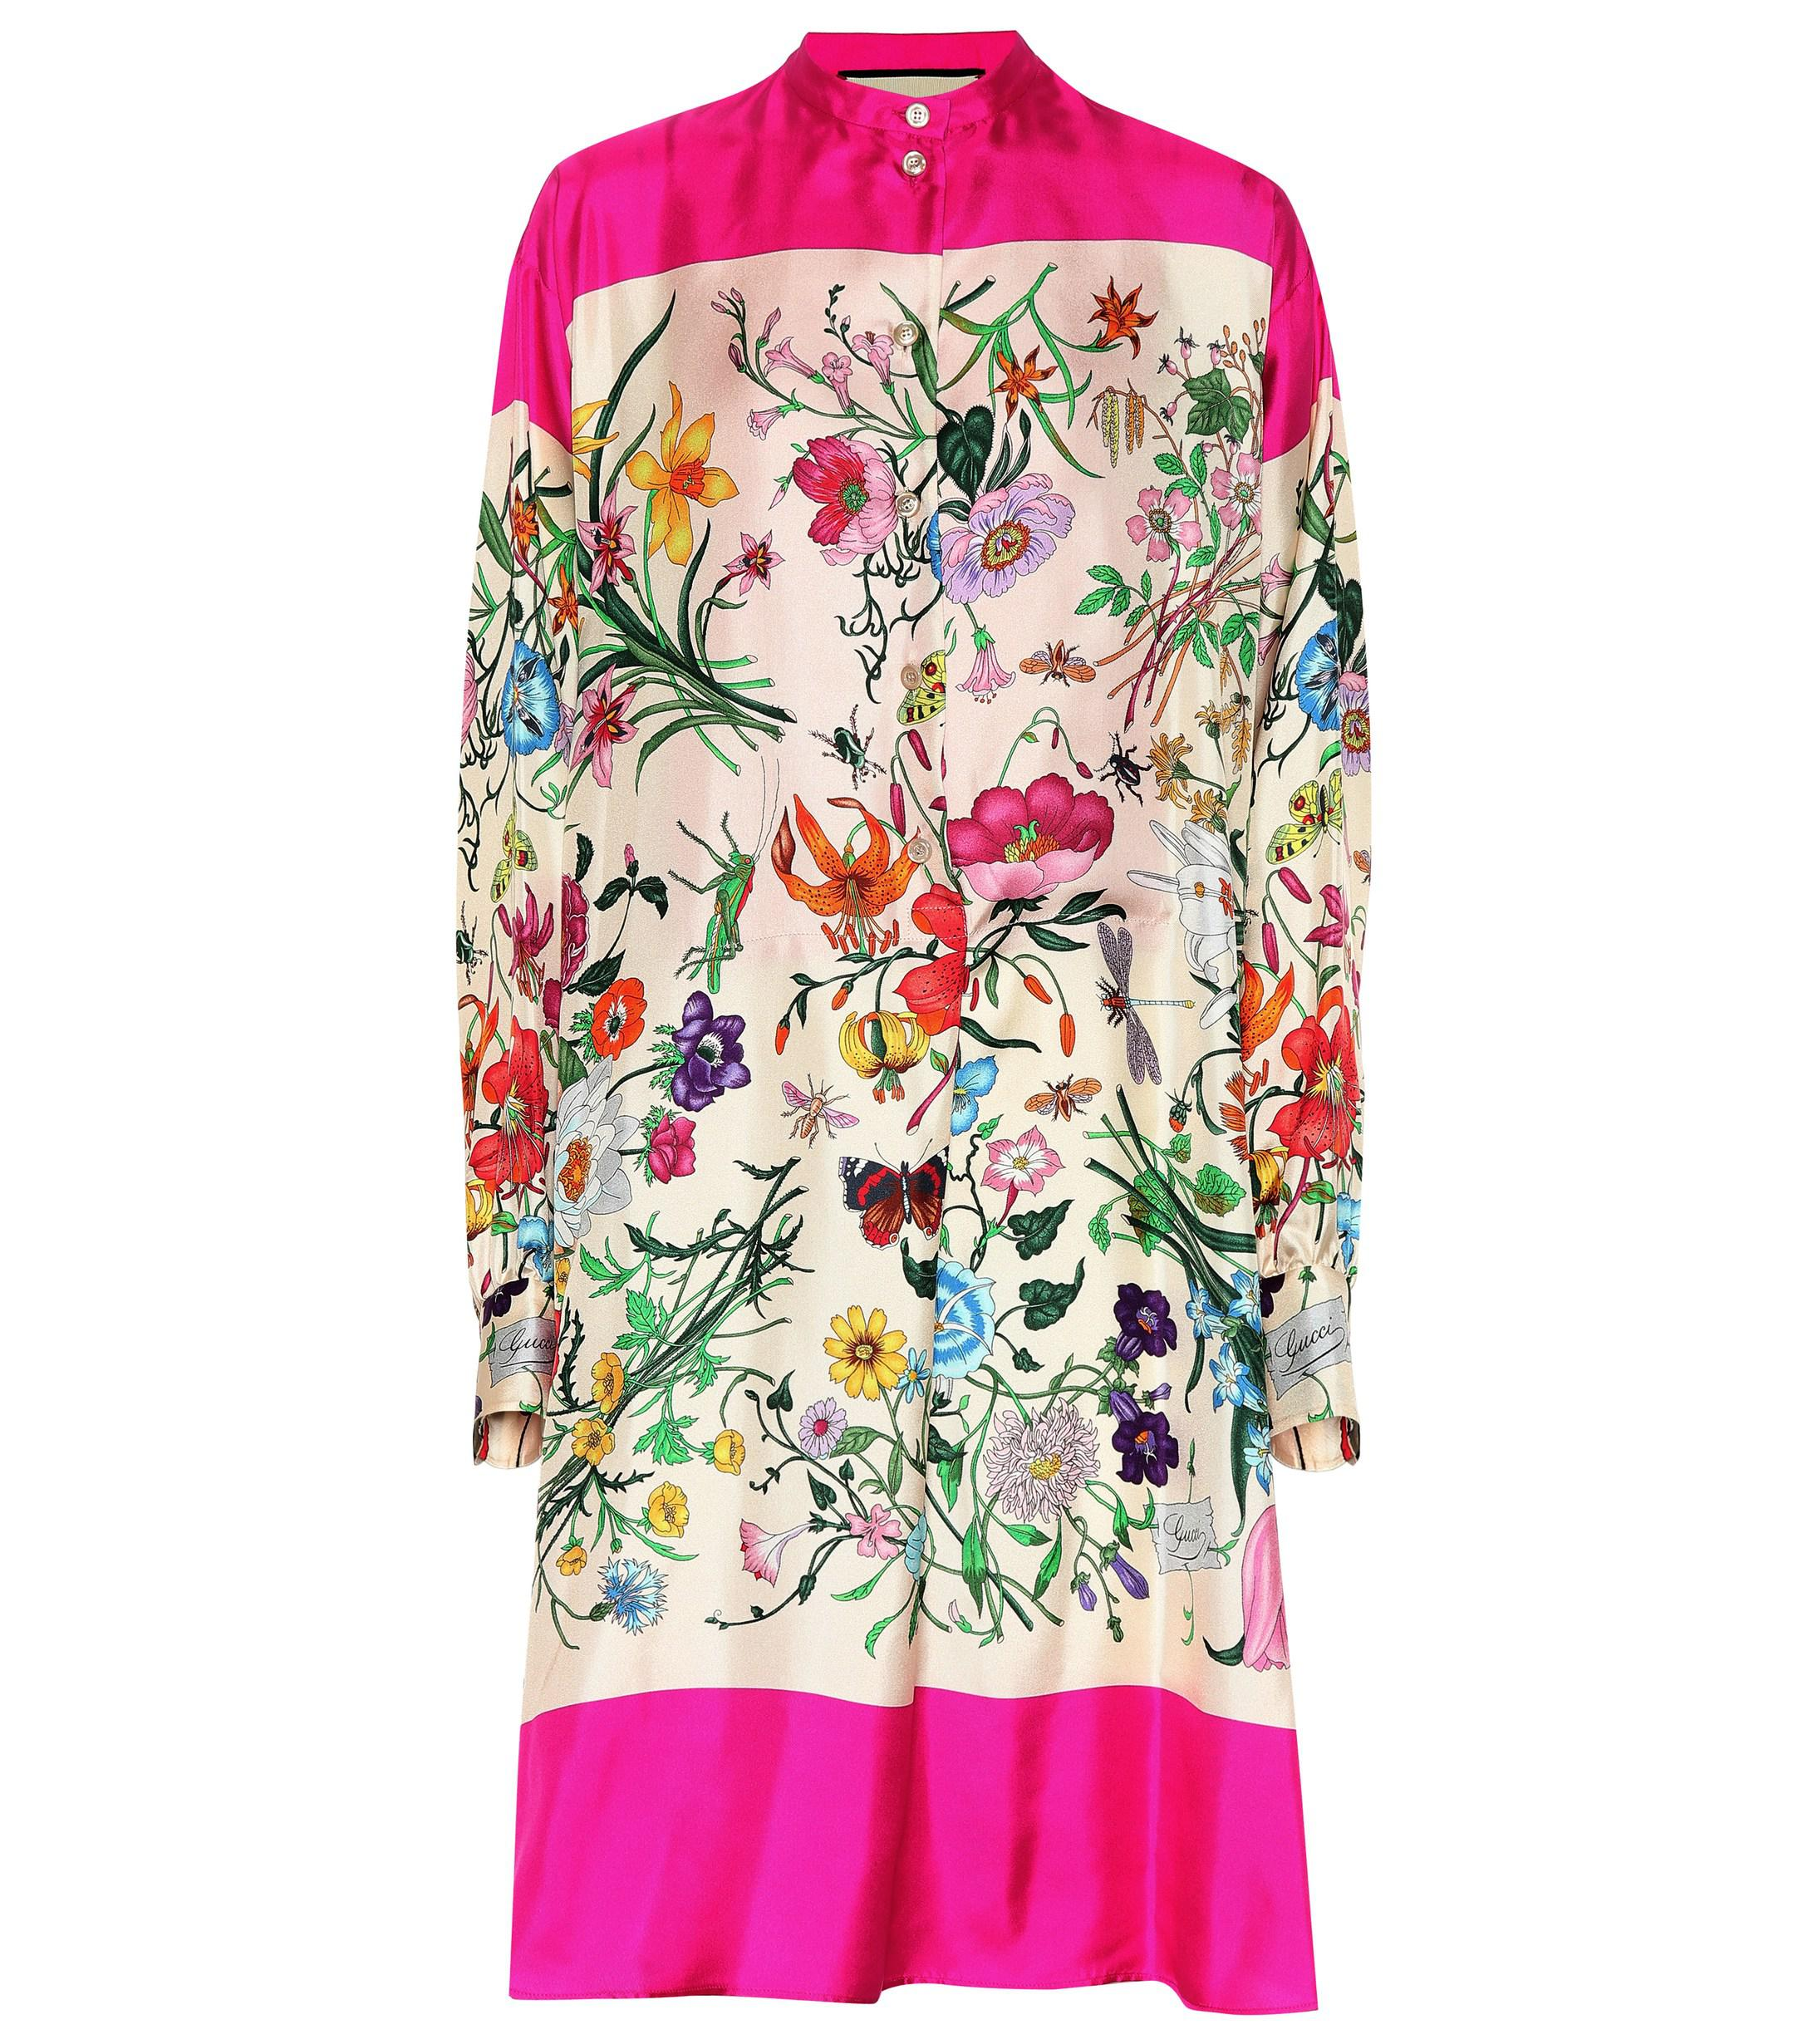 9e2b8b51ab9a1 Gucci. Women s Floral Silk Twill Shirt Dress